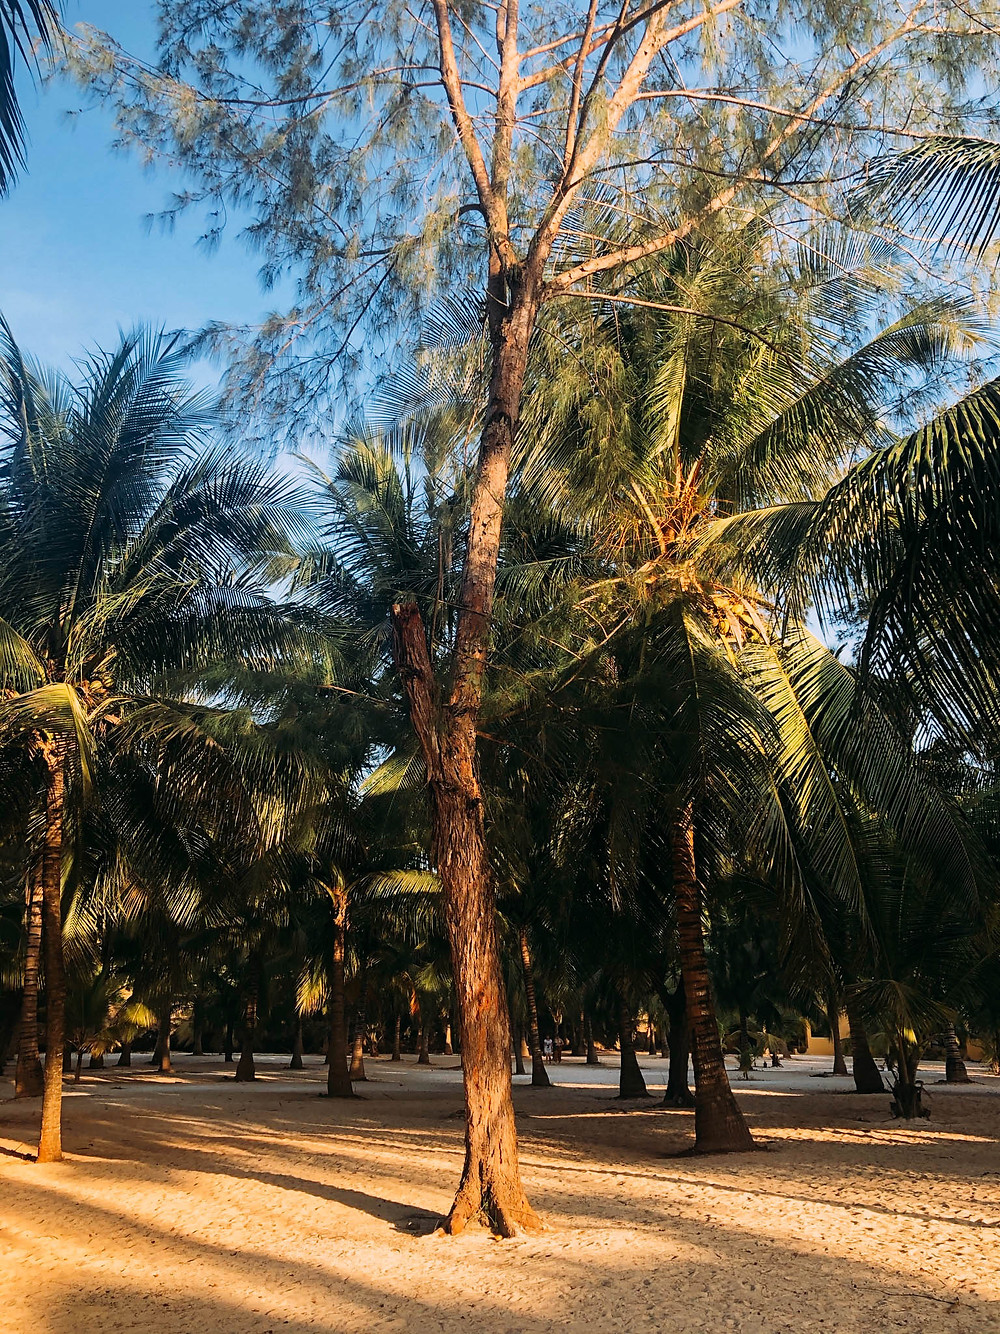 Where Kendwa's beaches and jungles collide